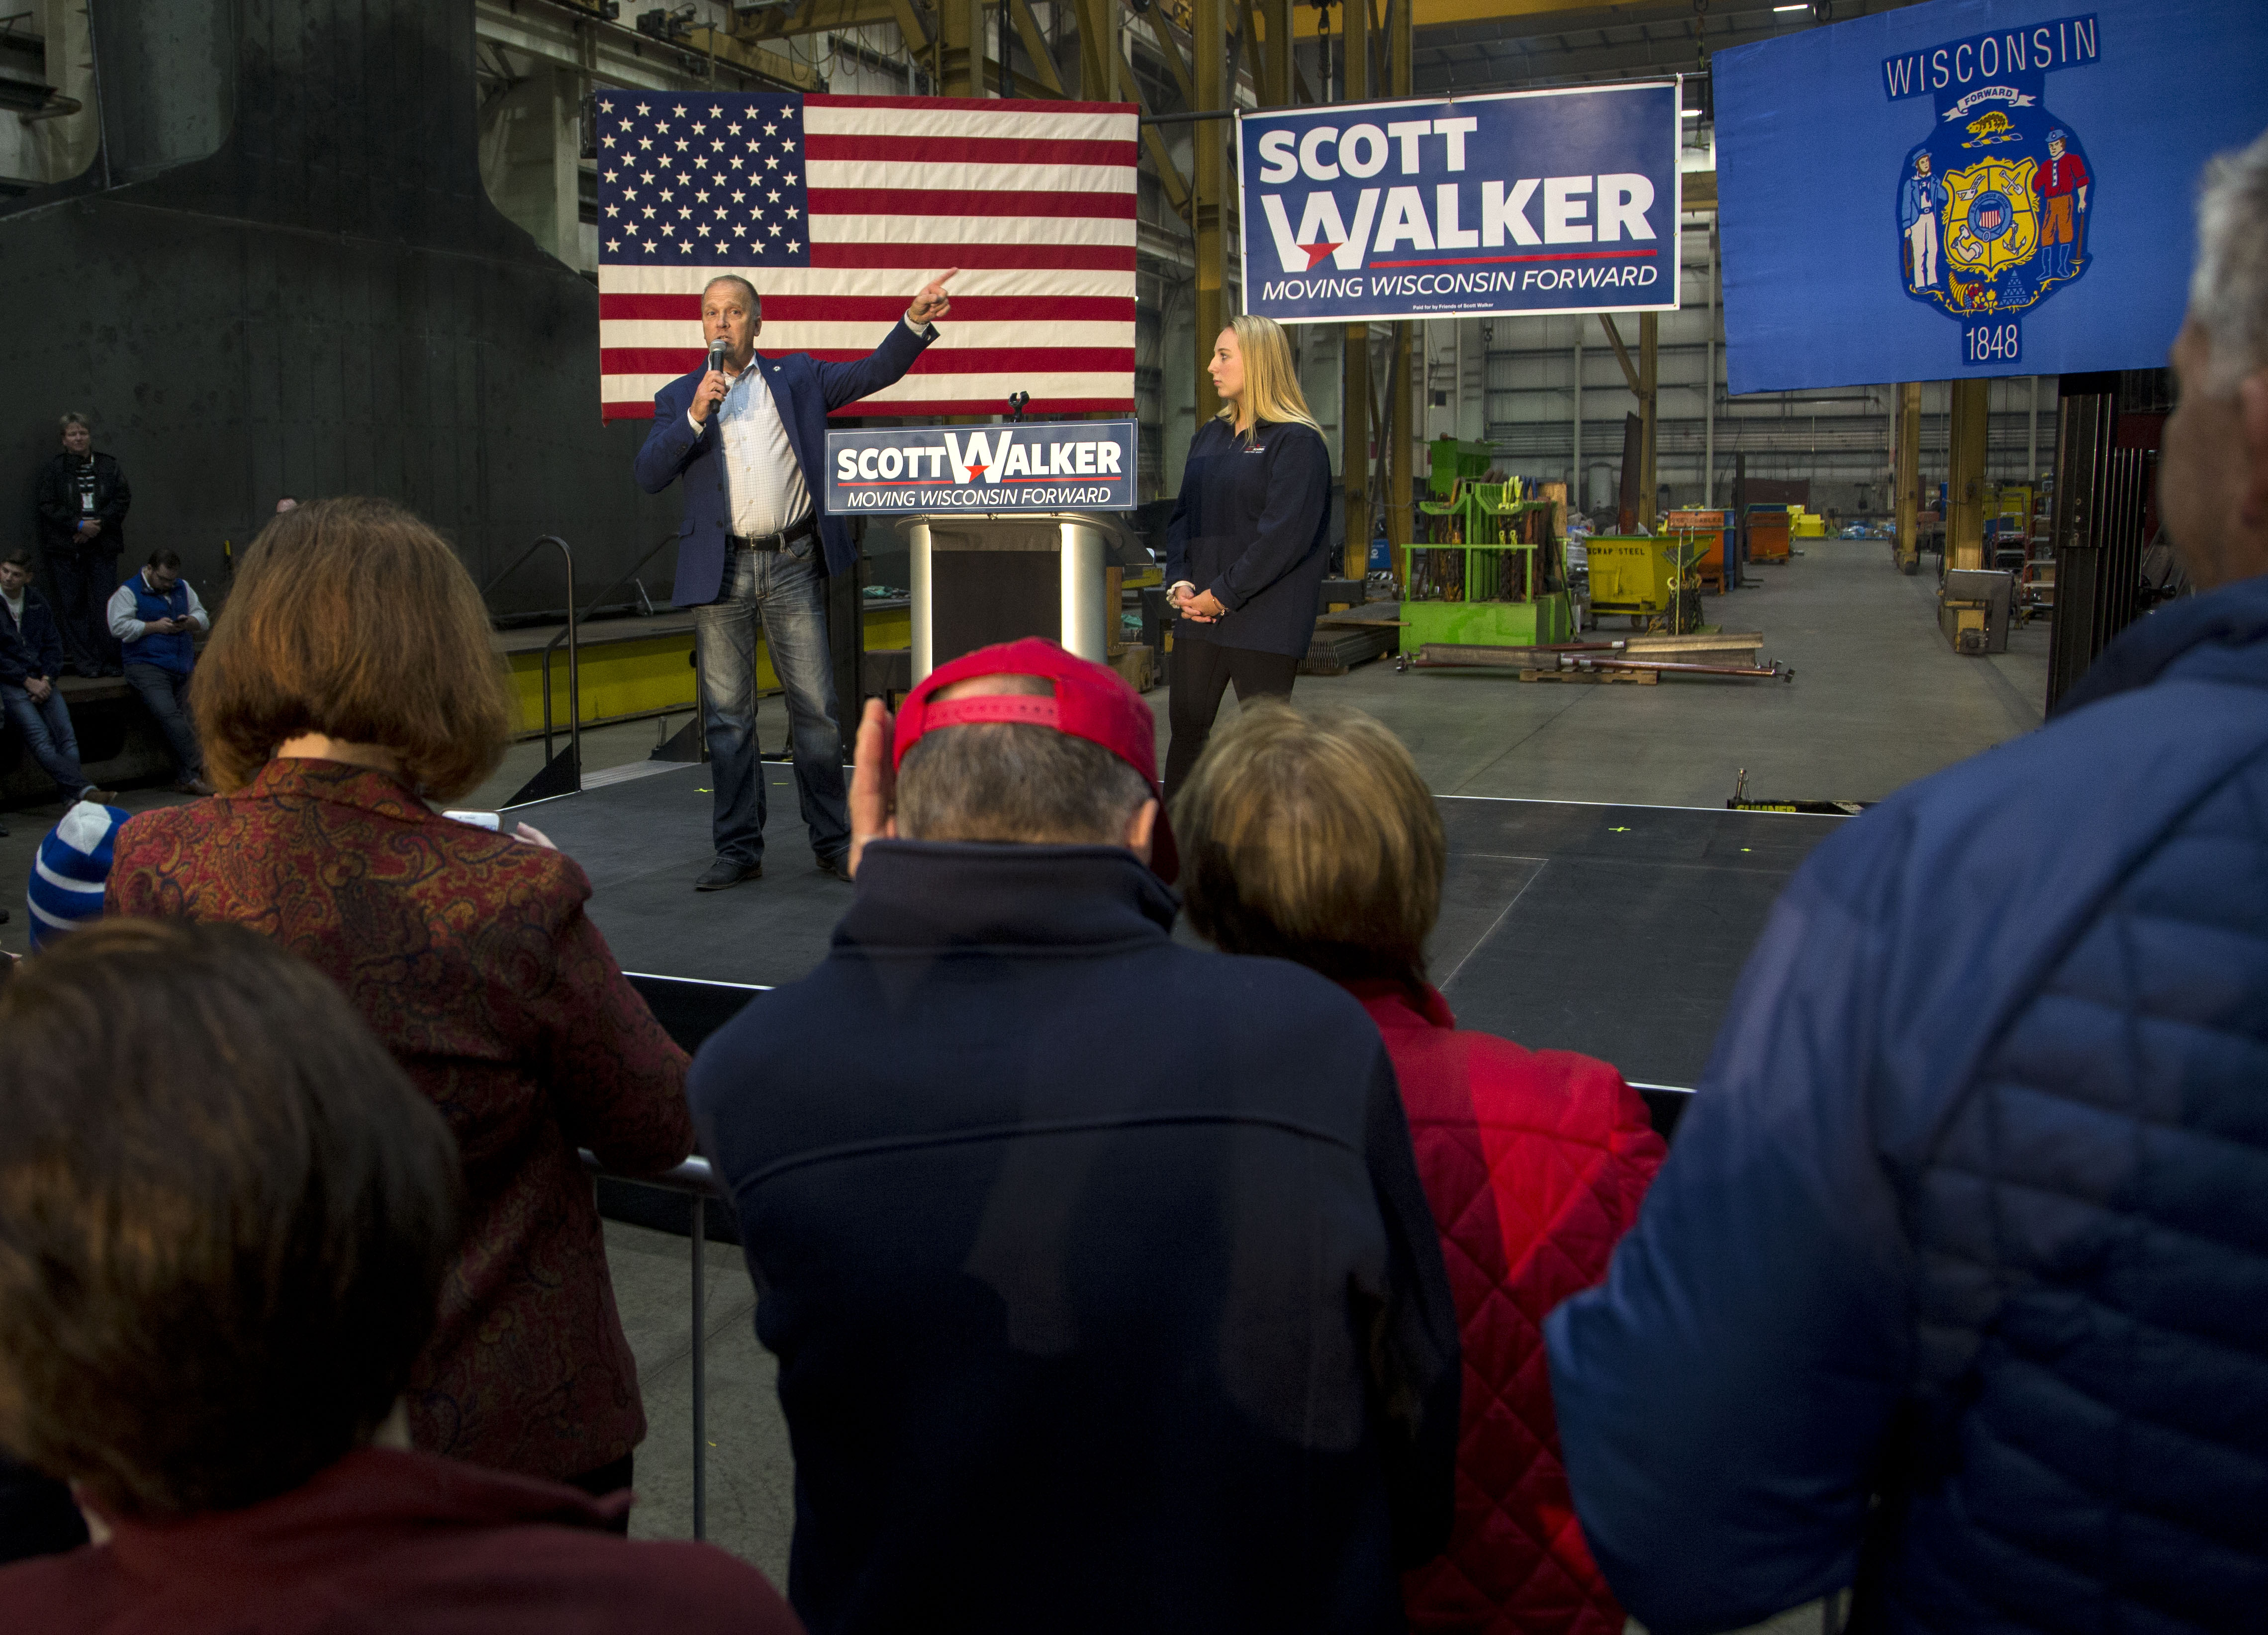 Gubernatorial Candidate Scott Walker Hots GOTV Rally On Eve Of Midterm Election